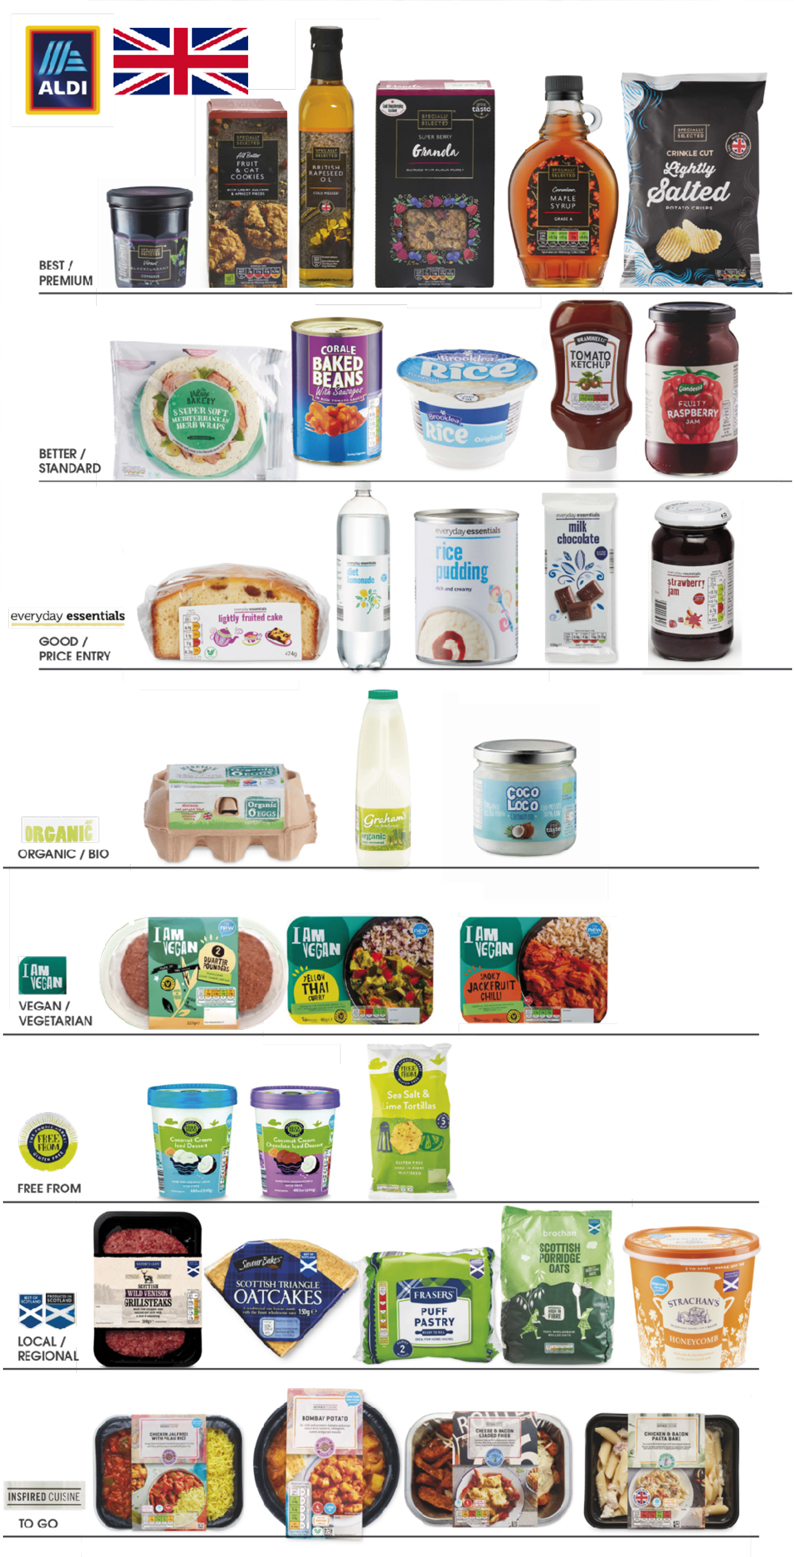 Trends in European grocery private brands